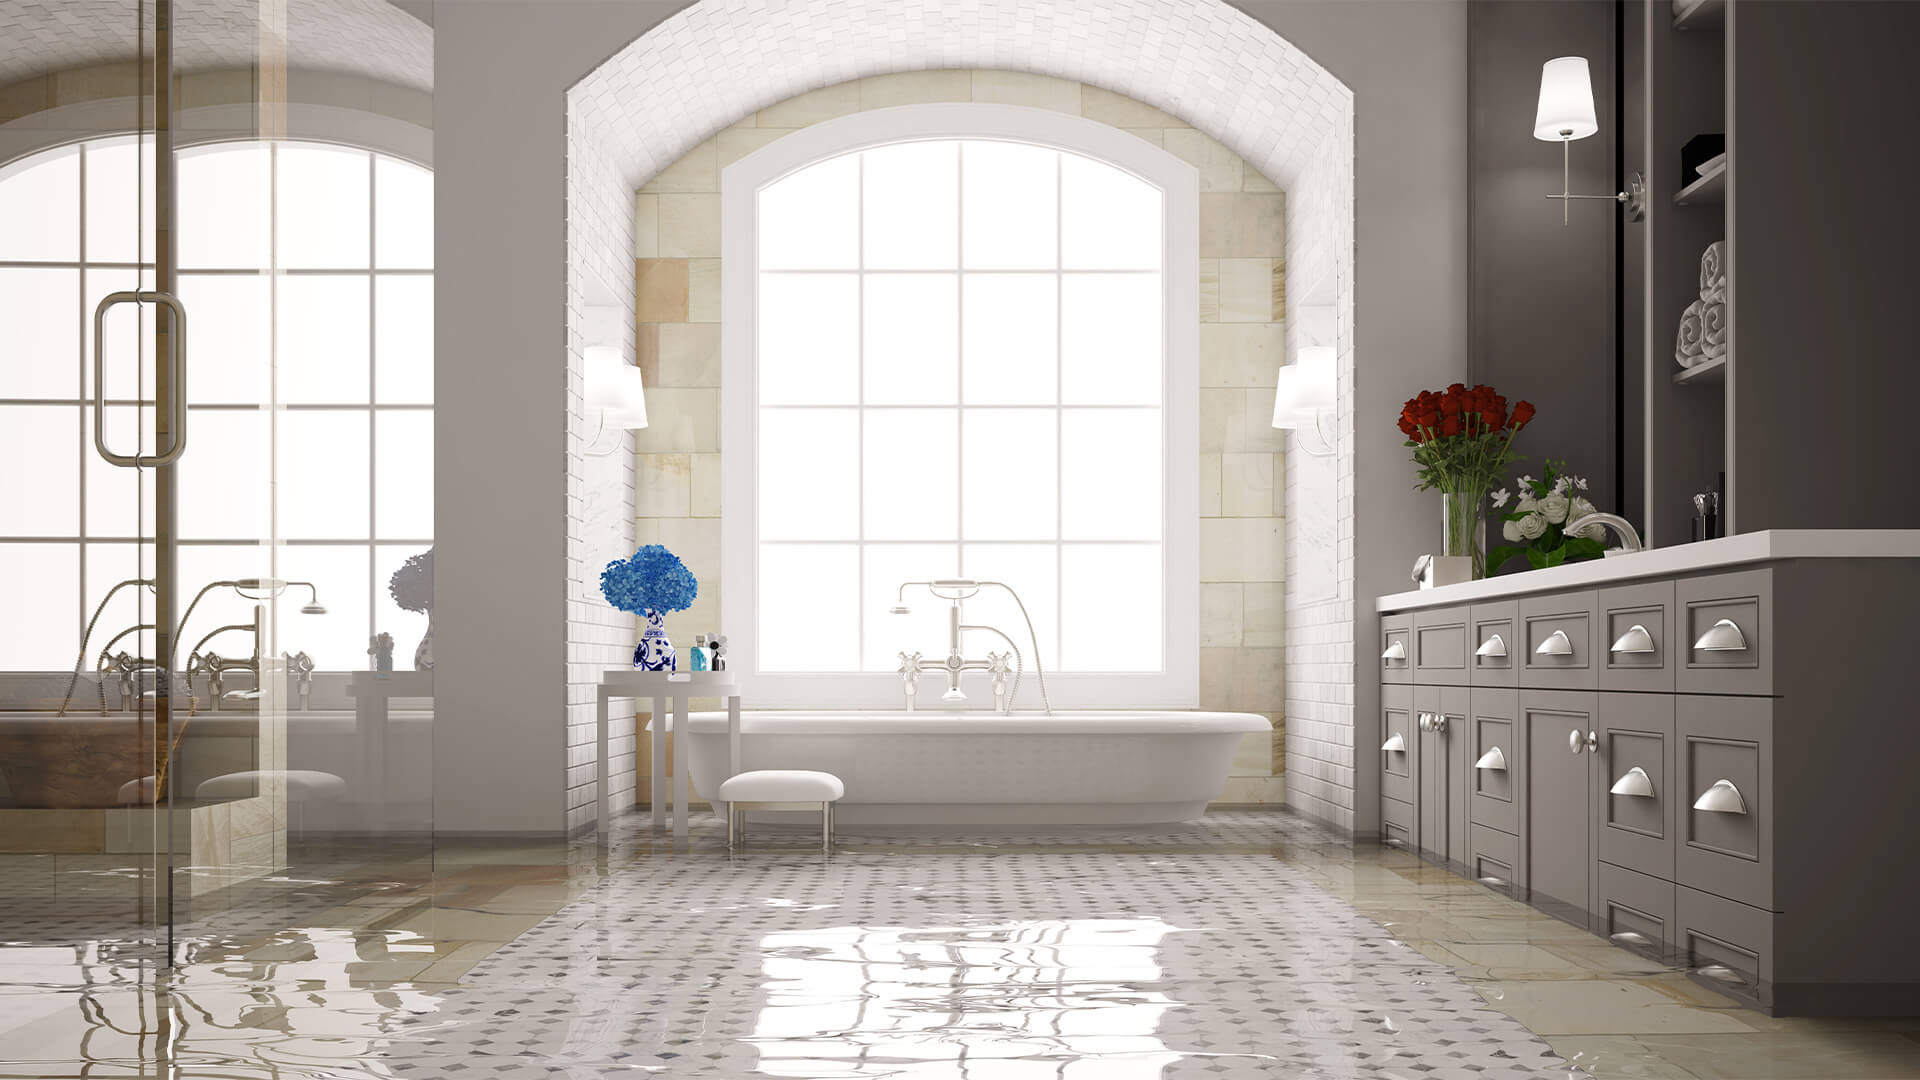 White tile and wooden floor bathroom with a few inches of flood water across the floor